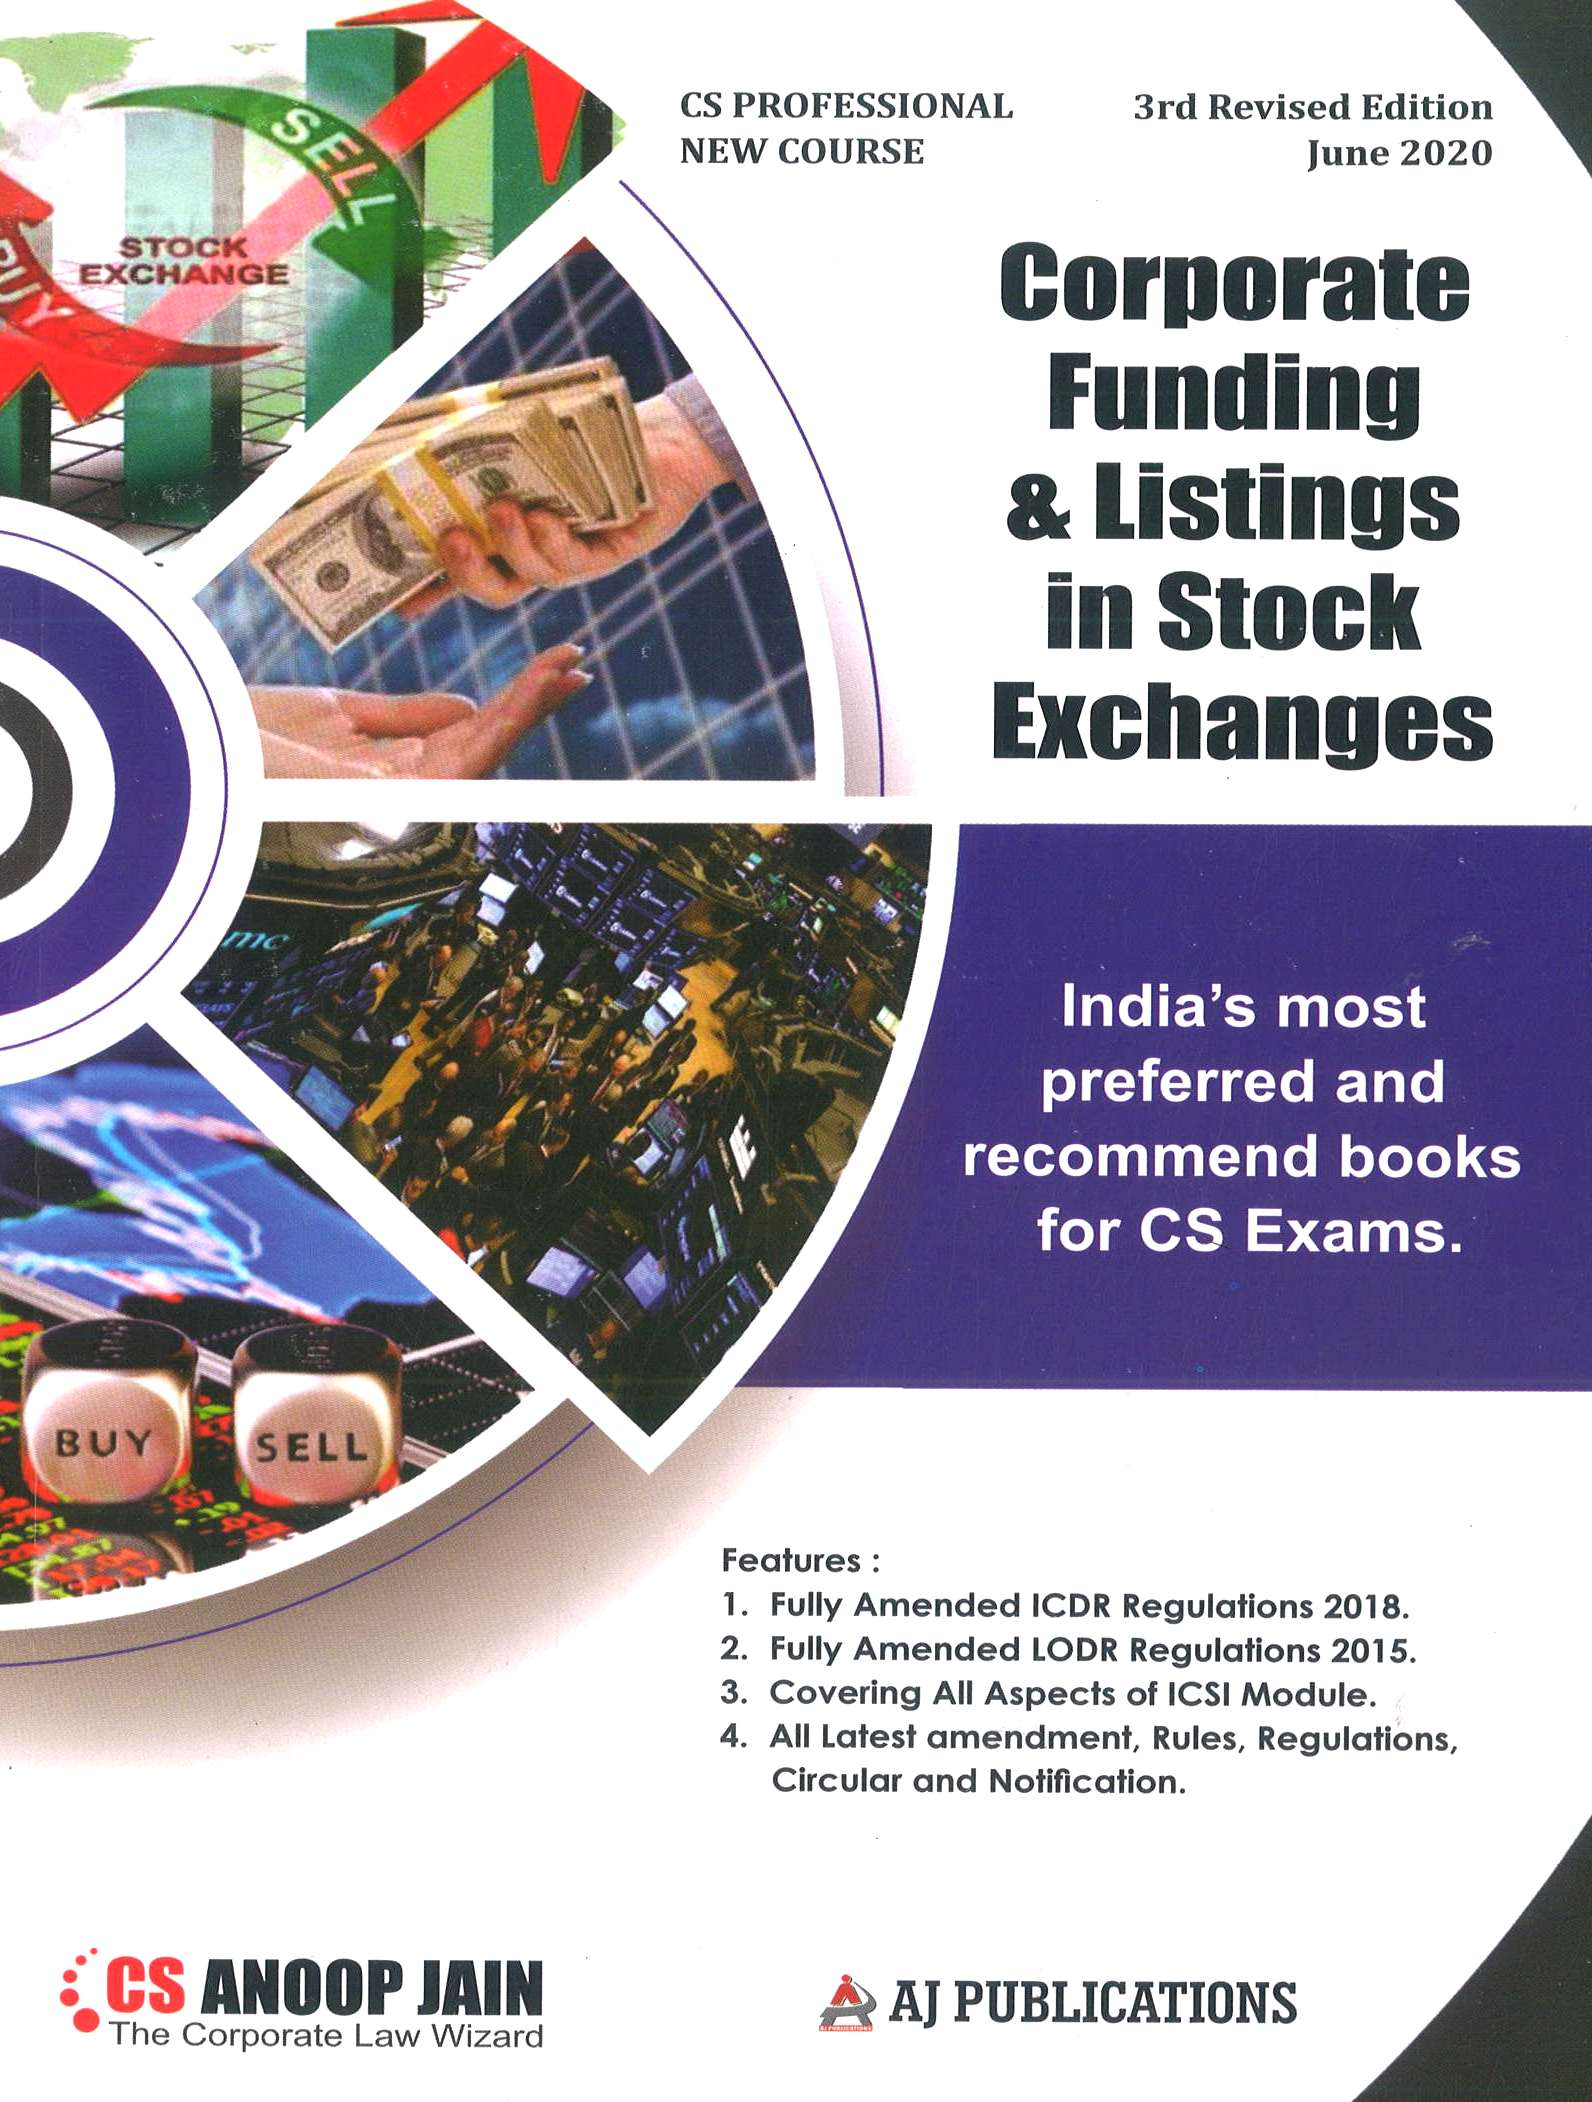 Aj publication CS Professional Programme Corporate Funding & Listings in Stock Exchanges New Syllabus By CS Anoop Jain Applicable fo May June 2020 Exam